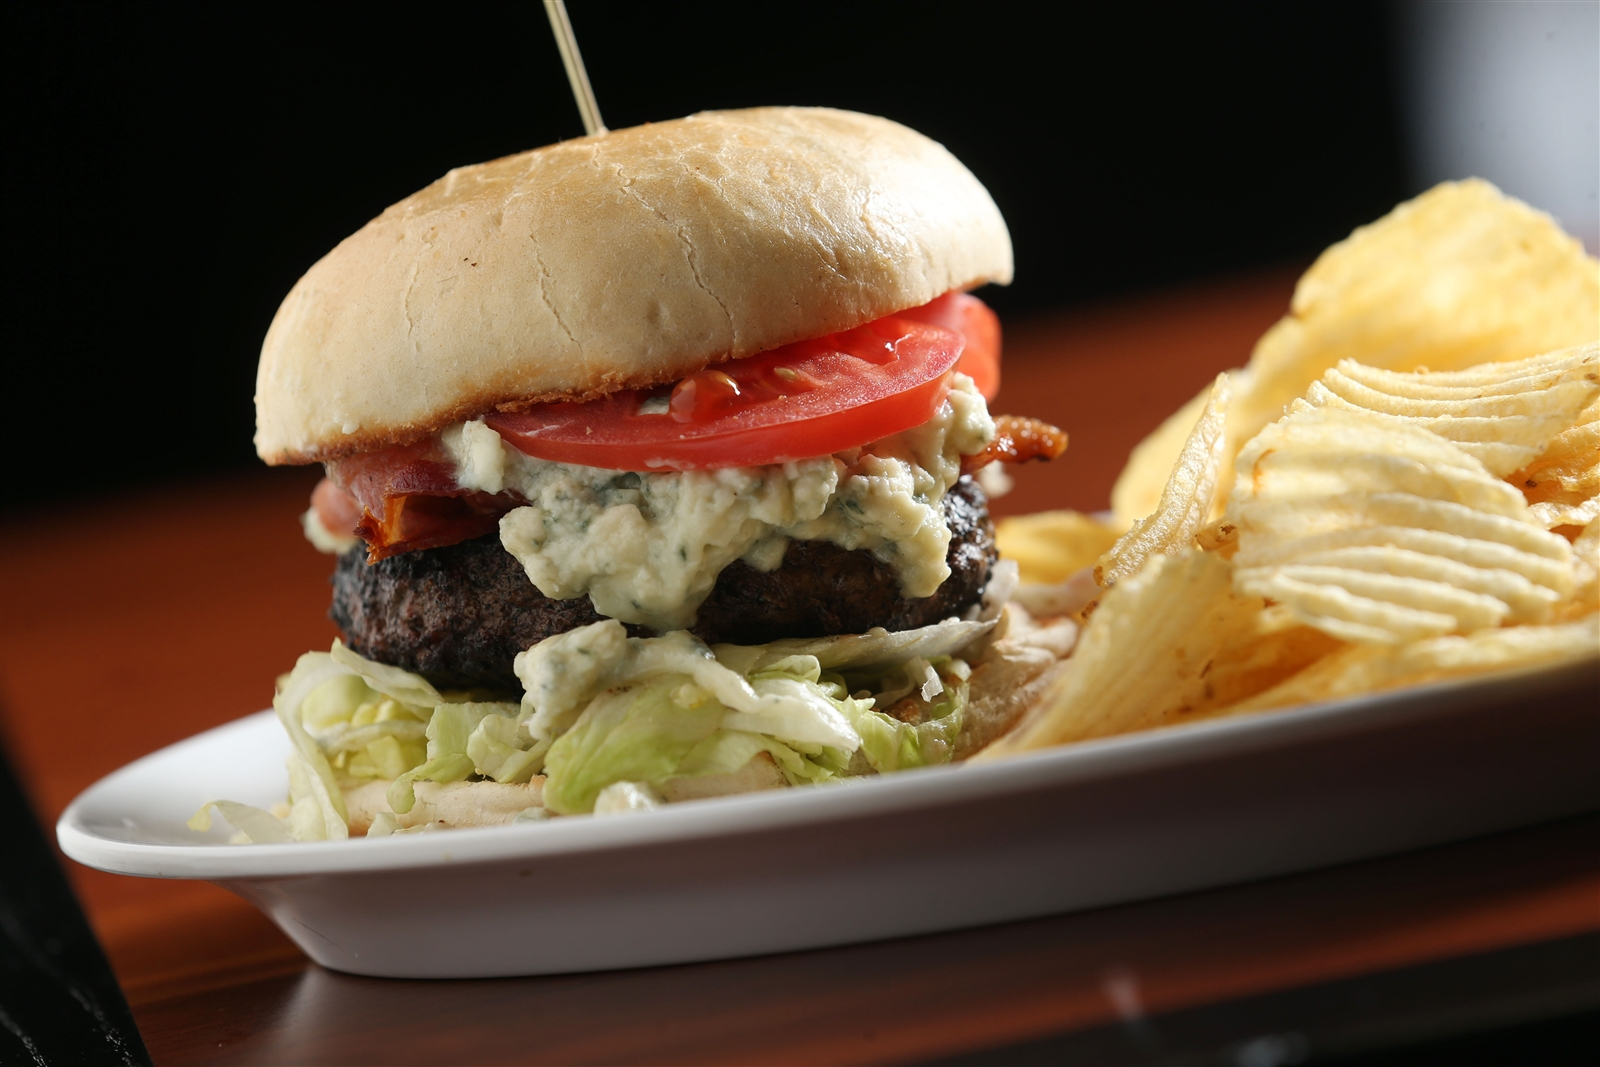 Rock Bottom Kitchen & Bar gives standard burgers an extra kick with The Raging Cajun Burger. The half pound burger is blackened cajun style and grilled, then topped with bacon, creamy bleu, lettuce and tomato. Rock Bottom is at 6261 Transit Rd.